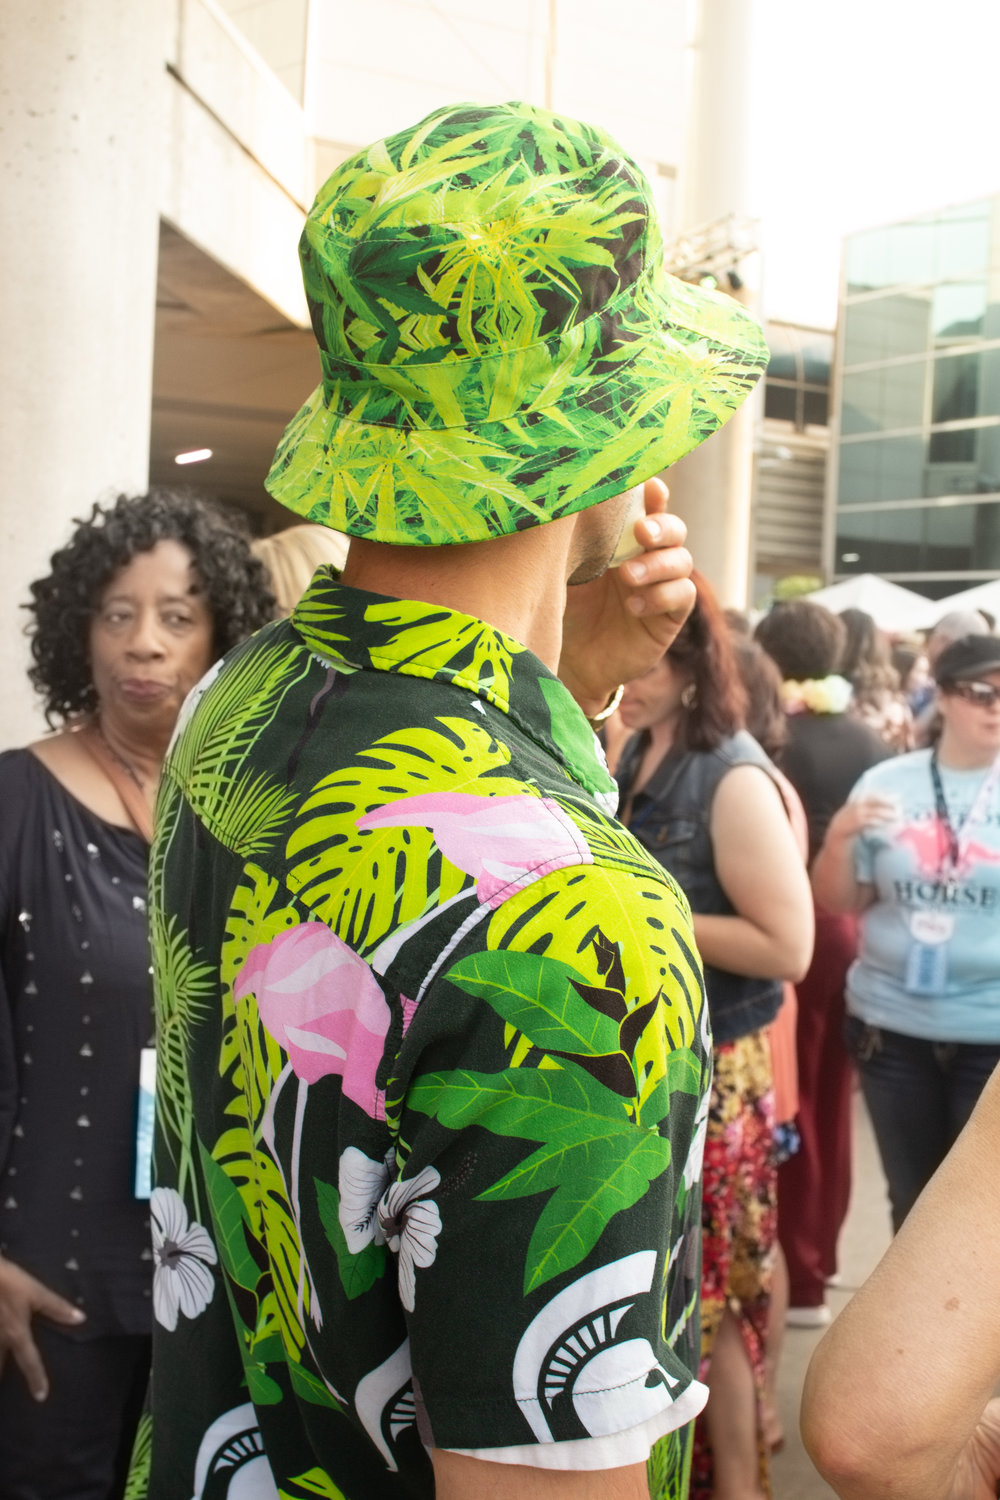 One festival-goer introduced cannabis leaves to the mix of tropical prints.